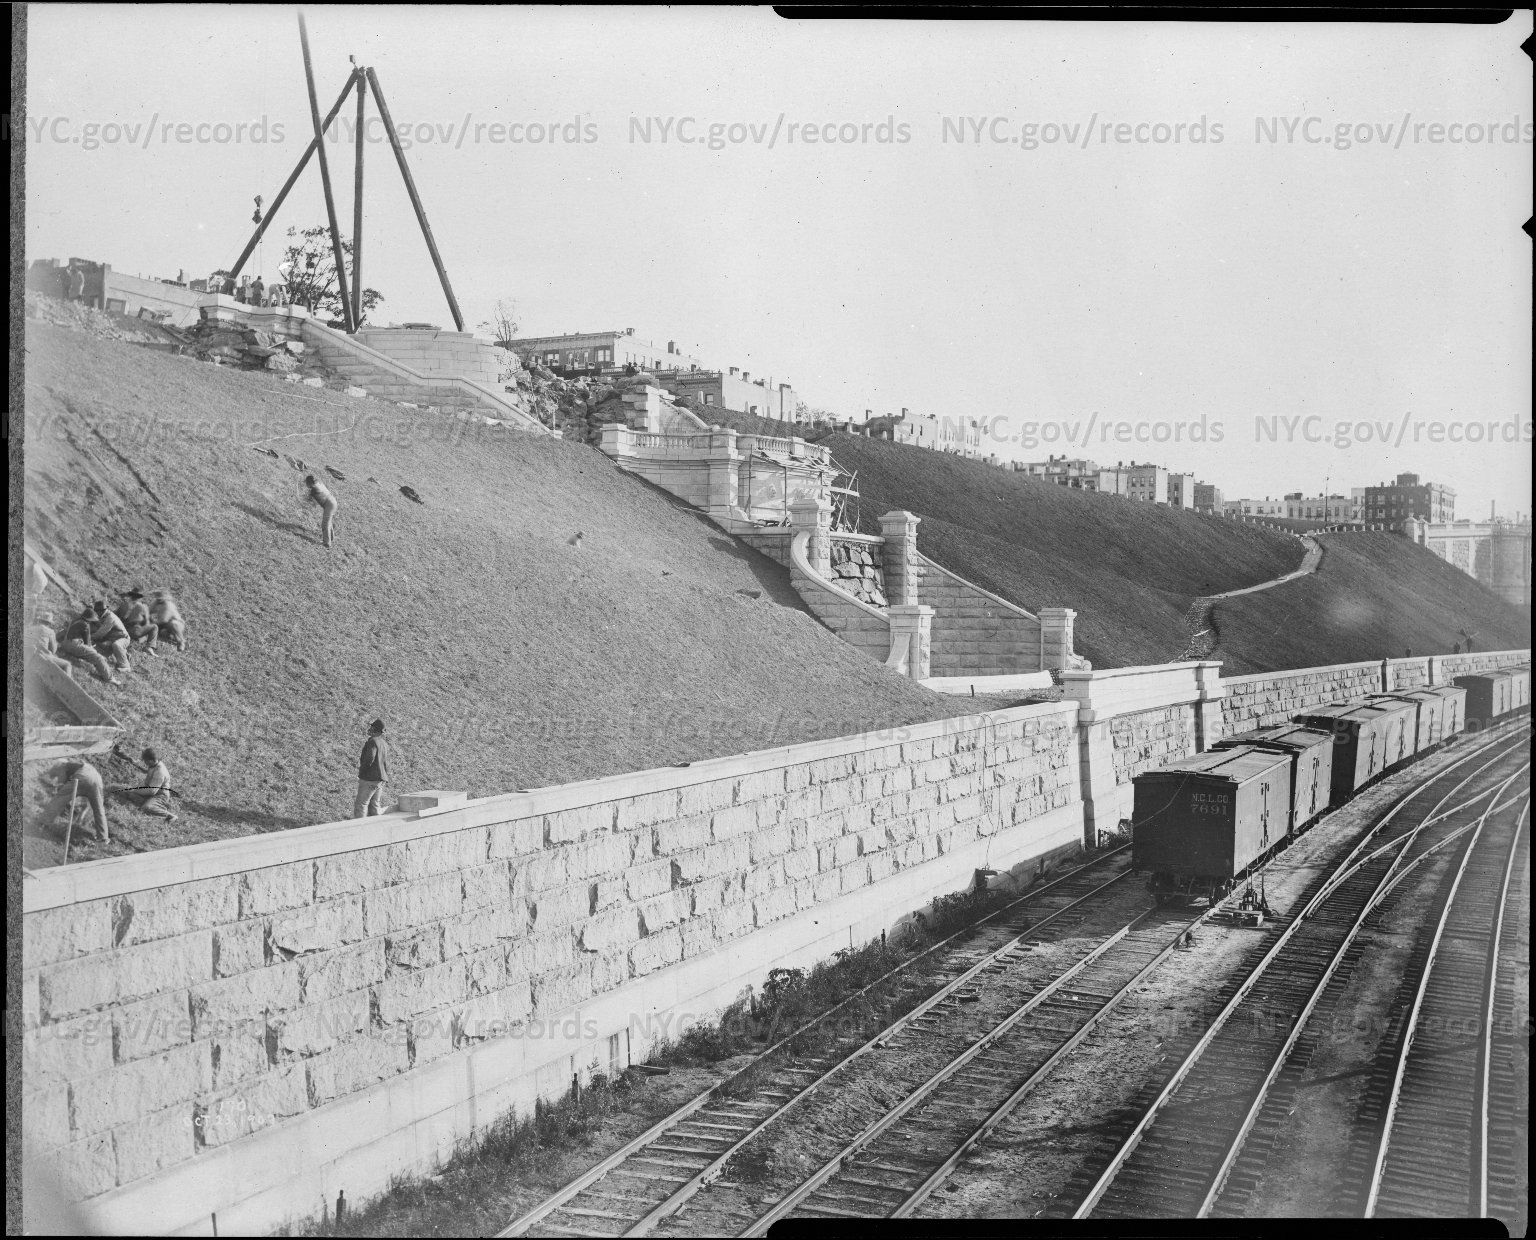 Constructing terrace, freight train; houses in background